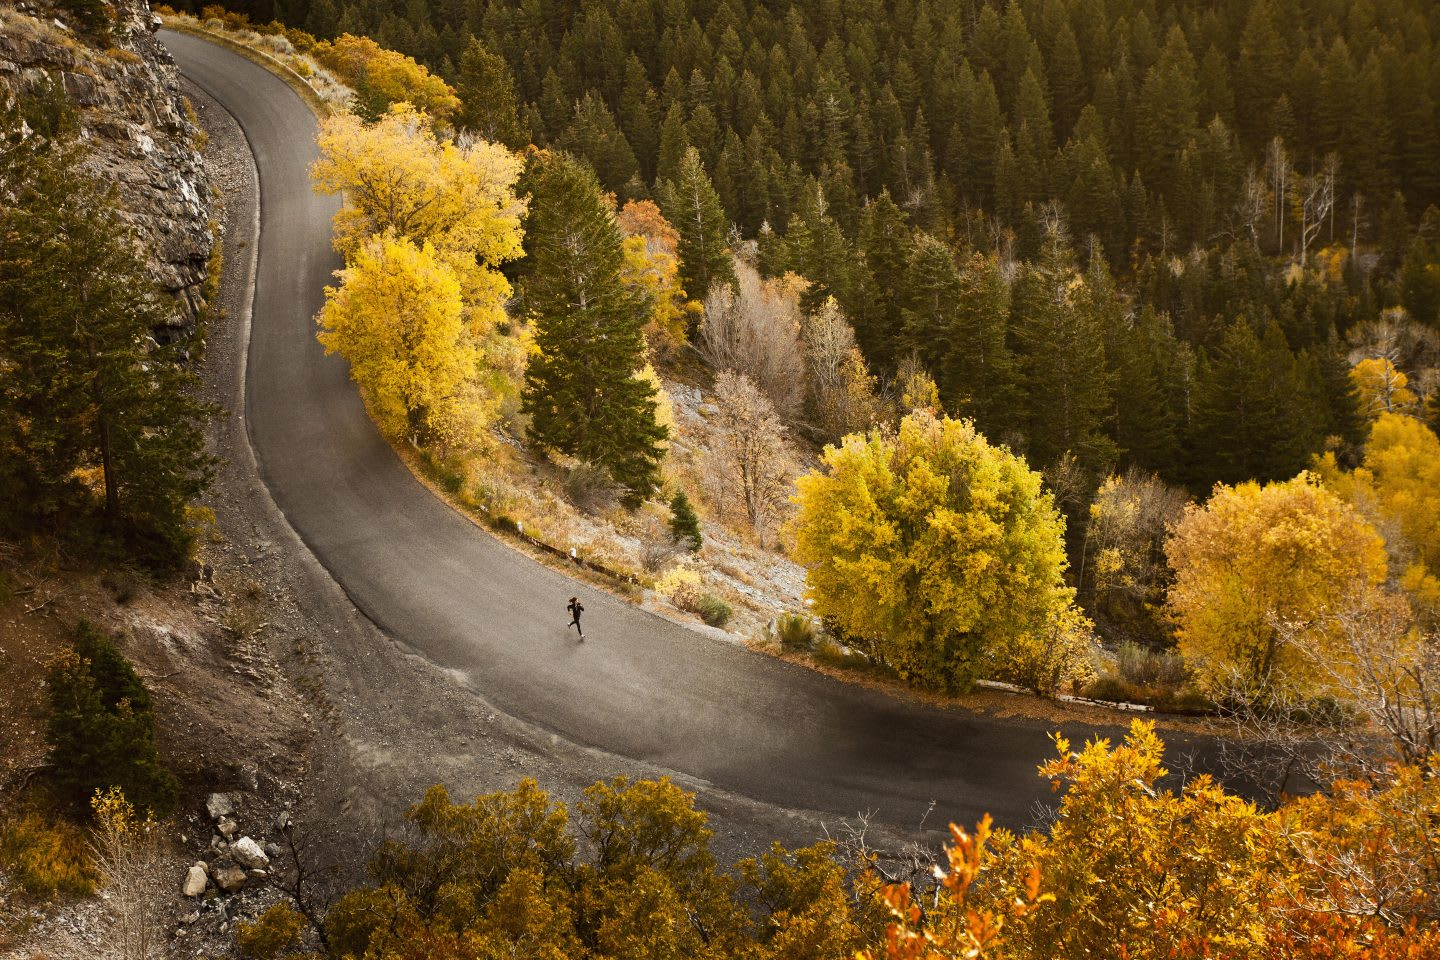 Solo runner running down winding round in between trees with autumn leaves, fall, scenic, mountain, road